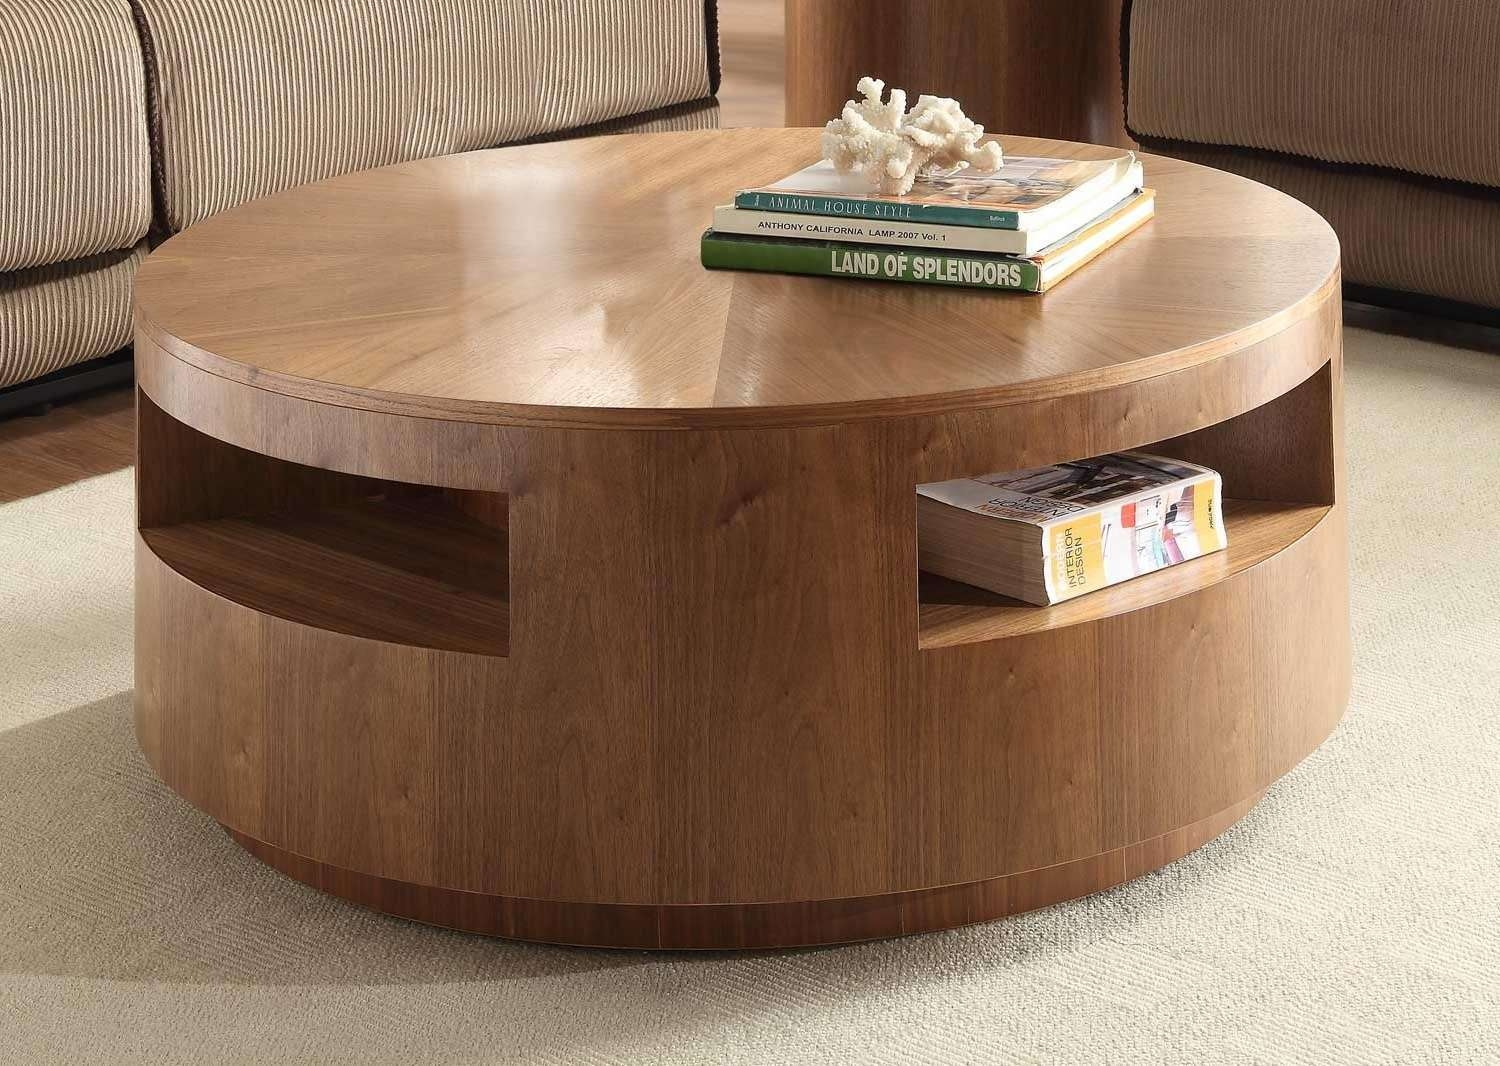 Most Current Round Coffee Table Storages Pertaining To Captivating Round Coffee Tables With Storage Images Inspiration (View 10 of 20)